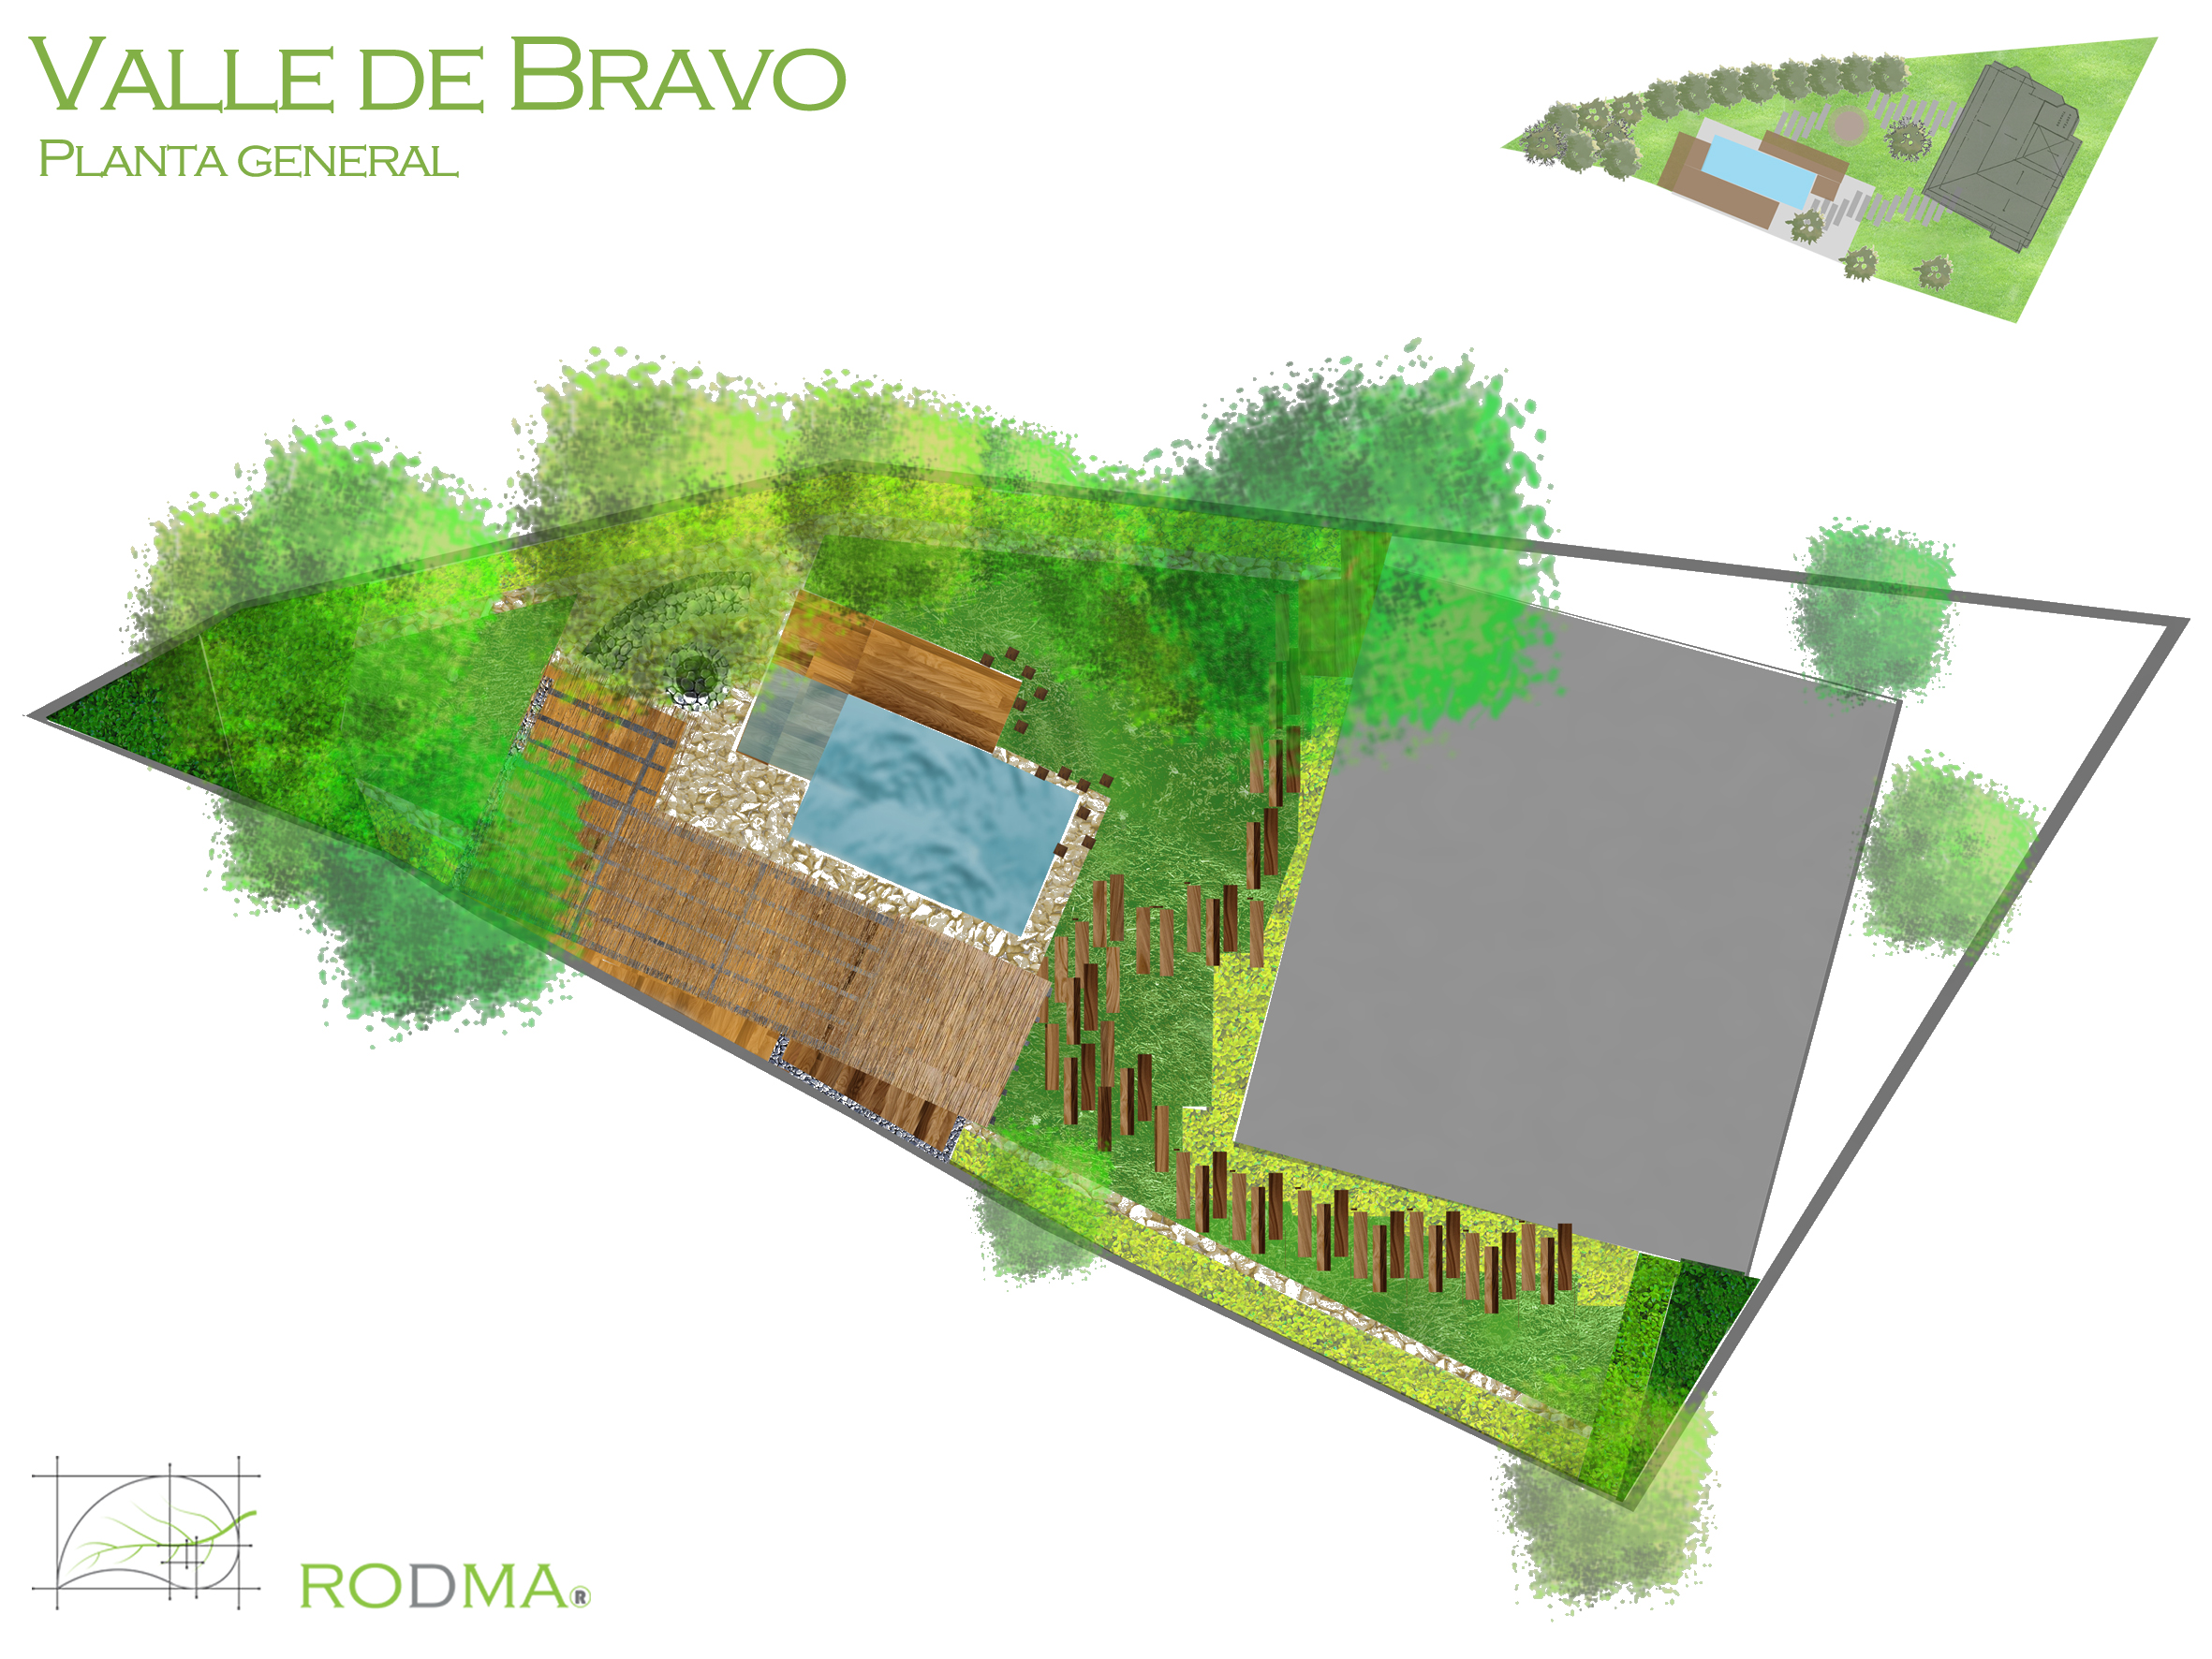 Layout conceptual